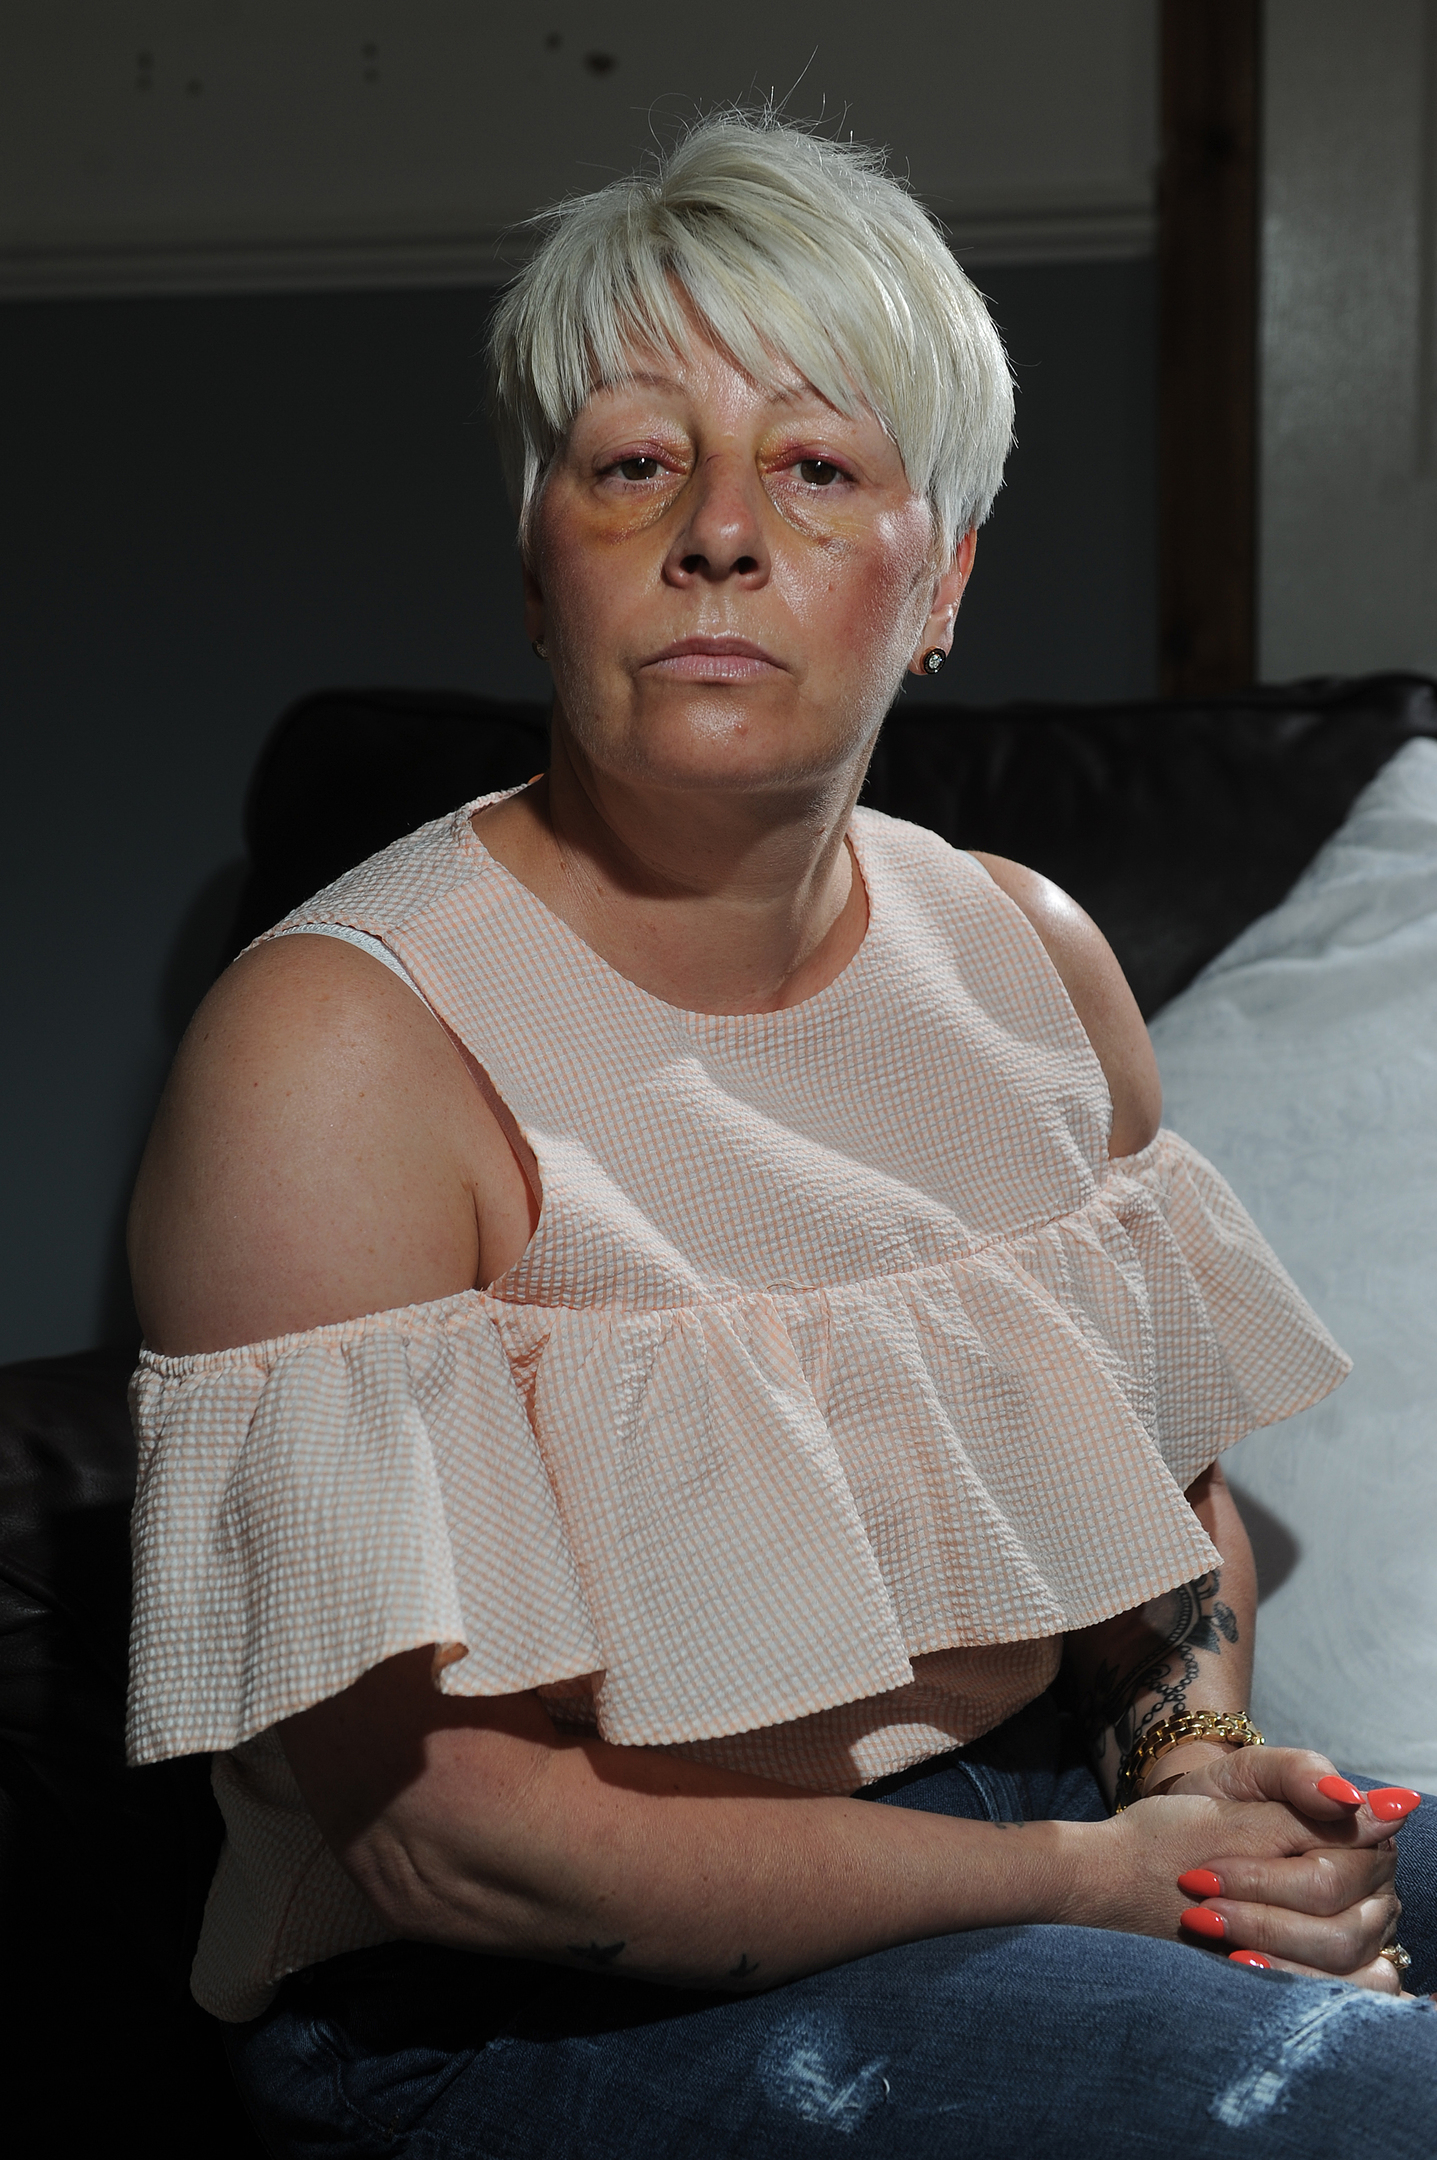 Telegraph News - News - Ryan Tute story; Dundee United supporter Madelaine Smith was attacked by Hamilton fans last Thursday after the playoff match outside Tannadice. She suffered a broken nose. Picture Shows; Madelaine Smith, 94 Eastwell Road, Lochee, Dundee, Tuesday 30th May 2017